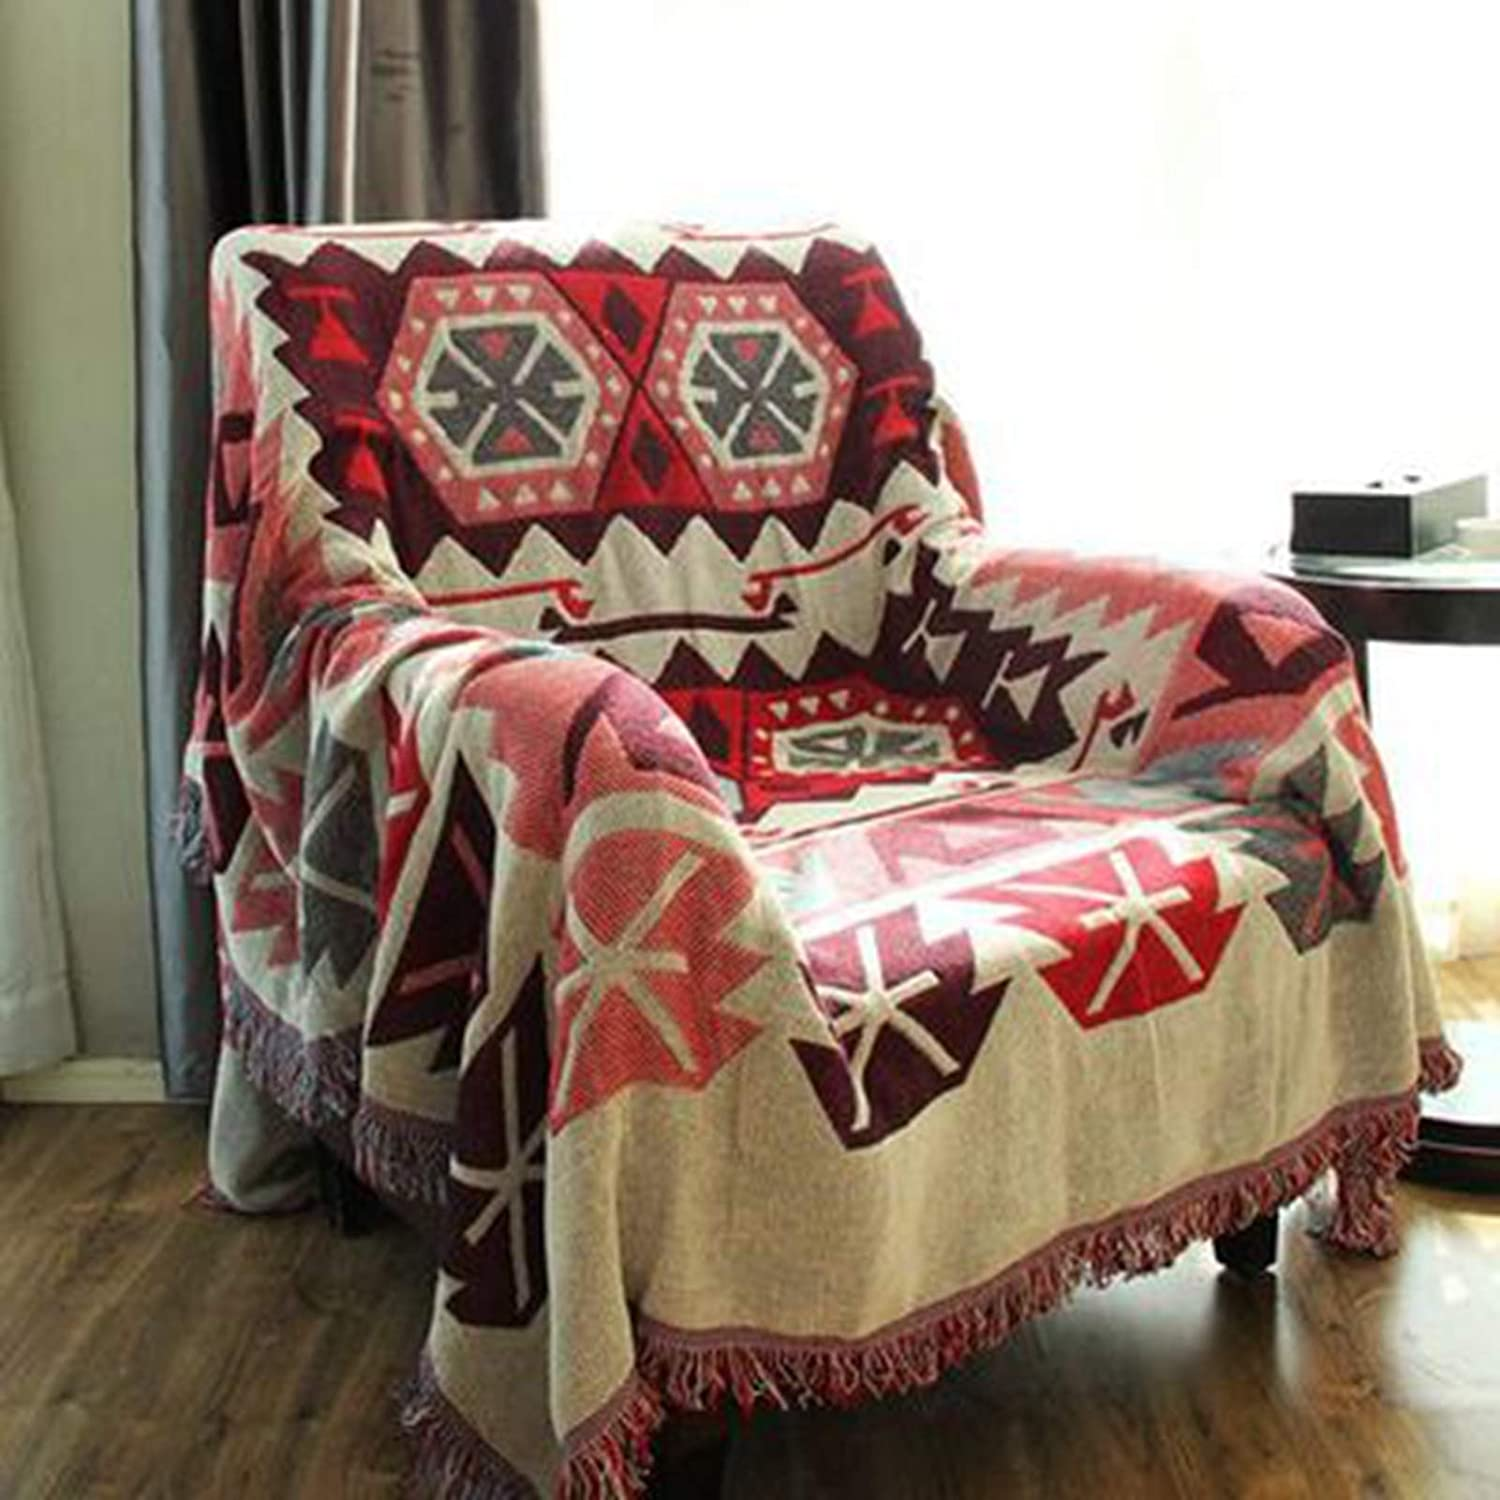 Bohemian Throws Blankets Soft Woven Throw Blanket supreme Knitted Cotton Max 82% OFF